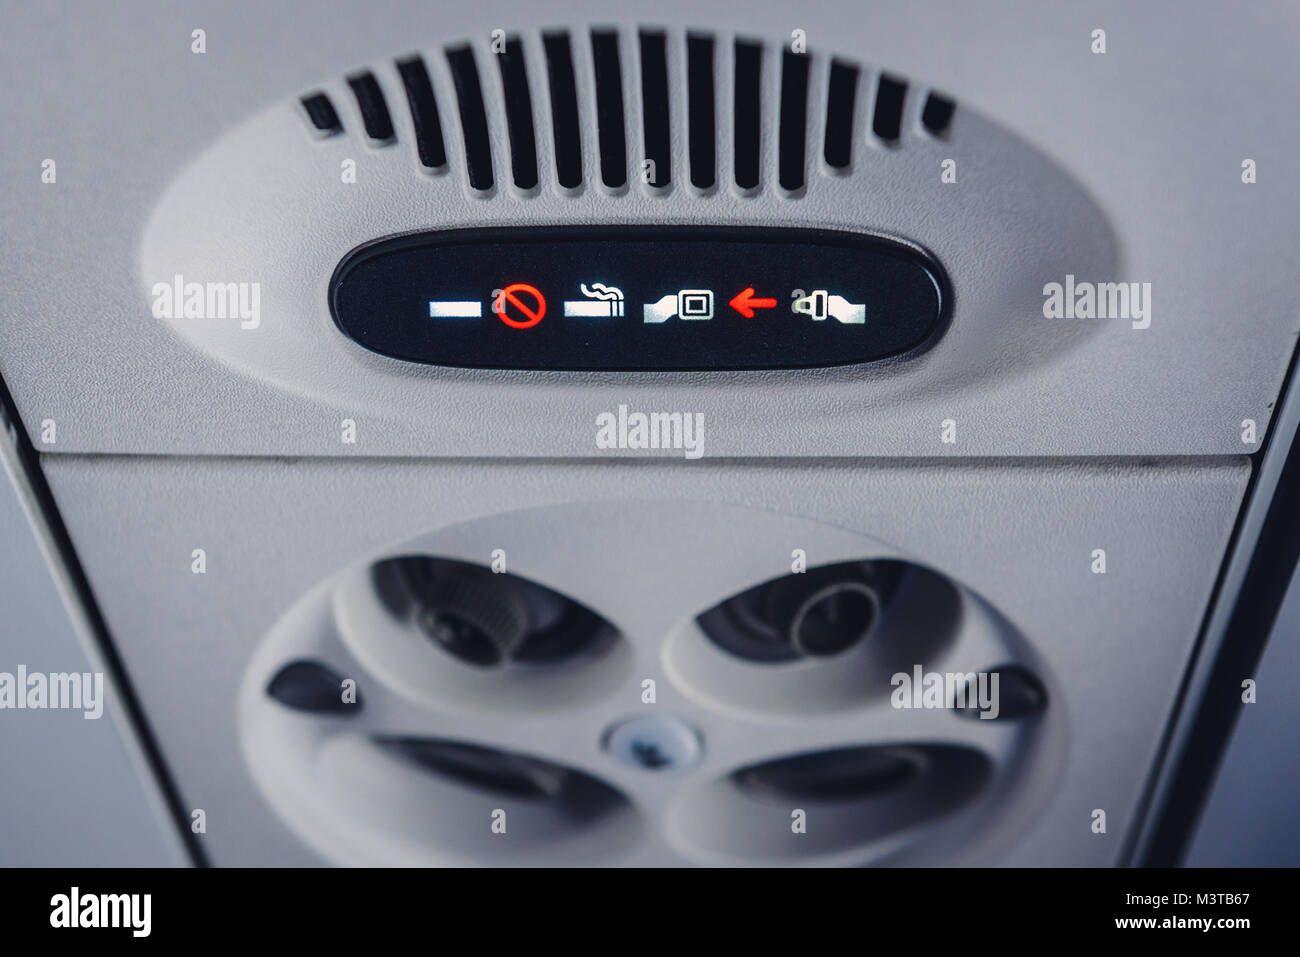 No smoking sign and fasten seat belts signs in plane during take-off - Stock Image